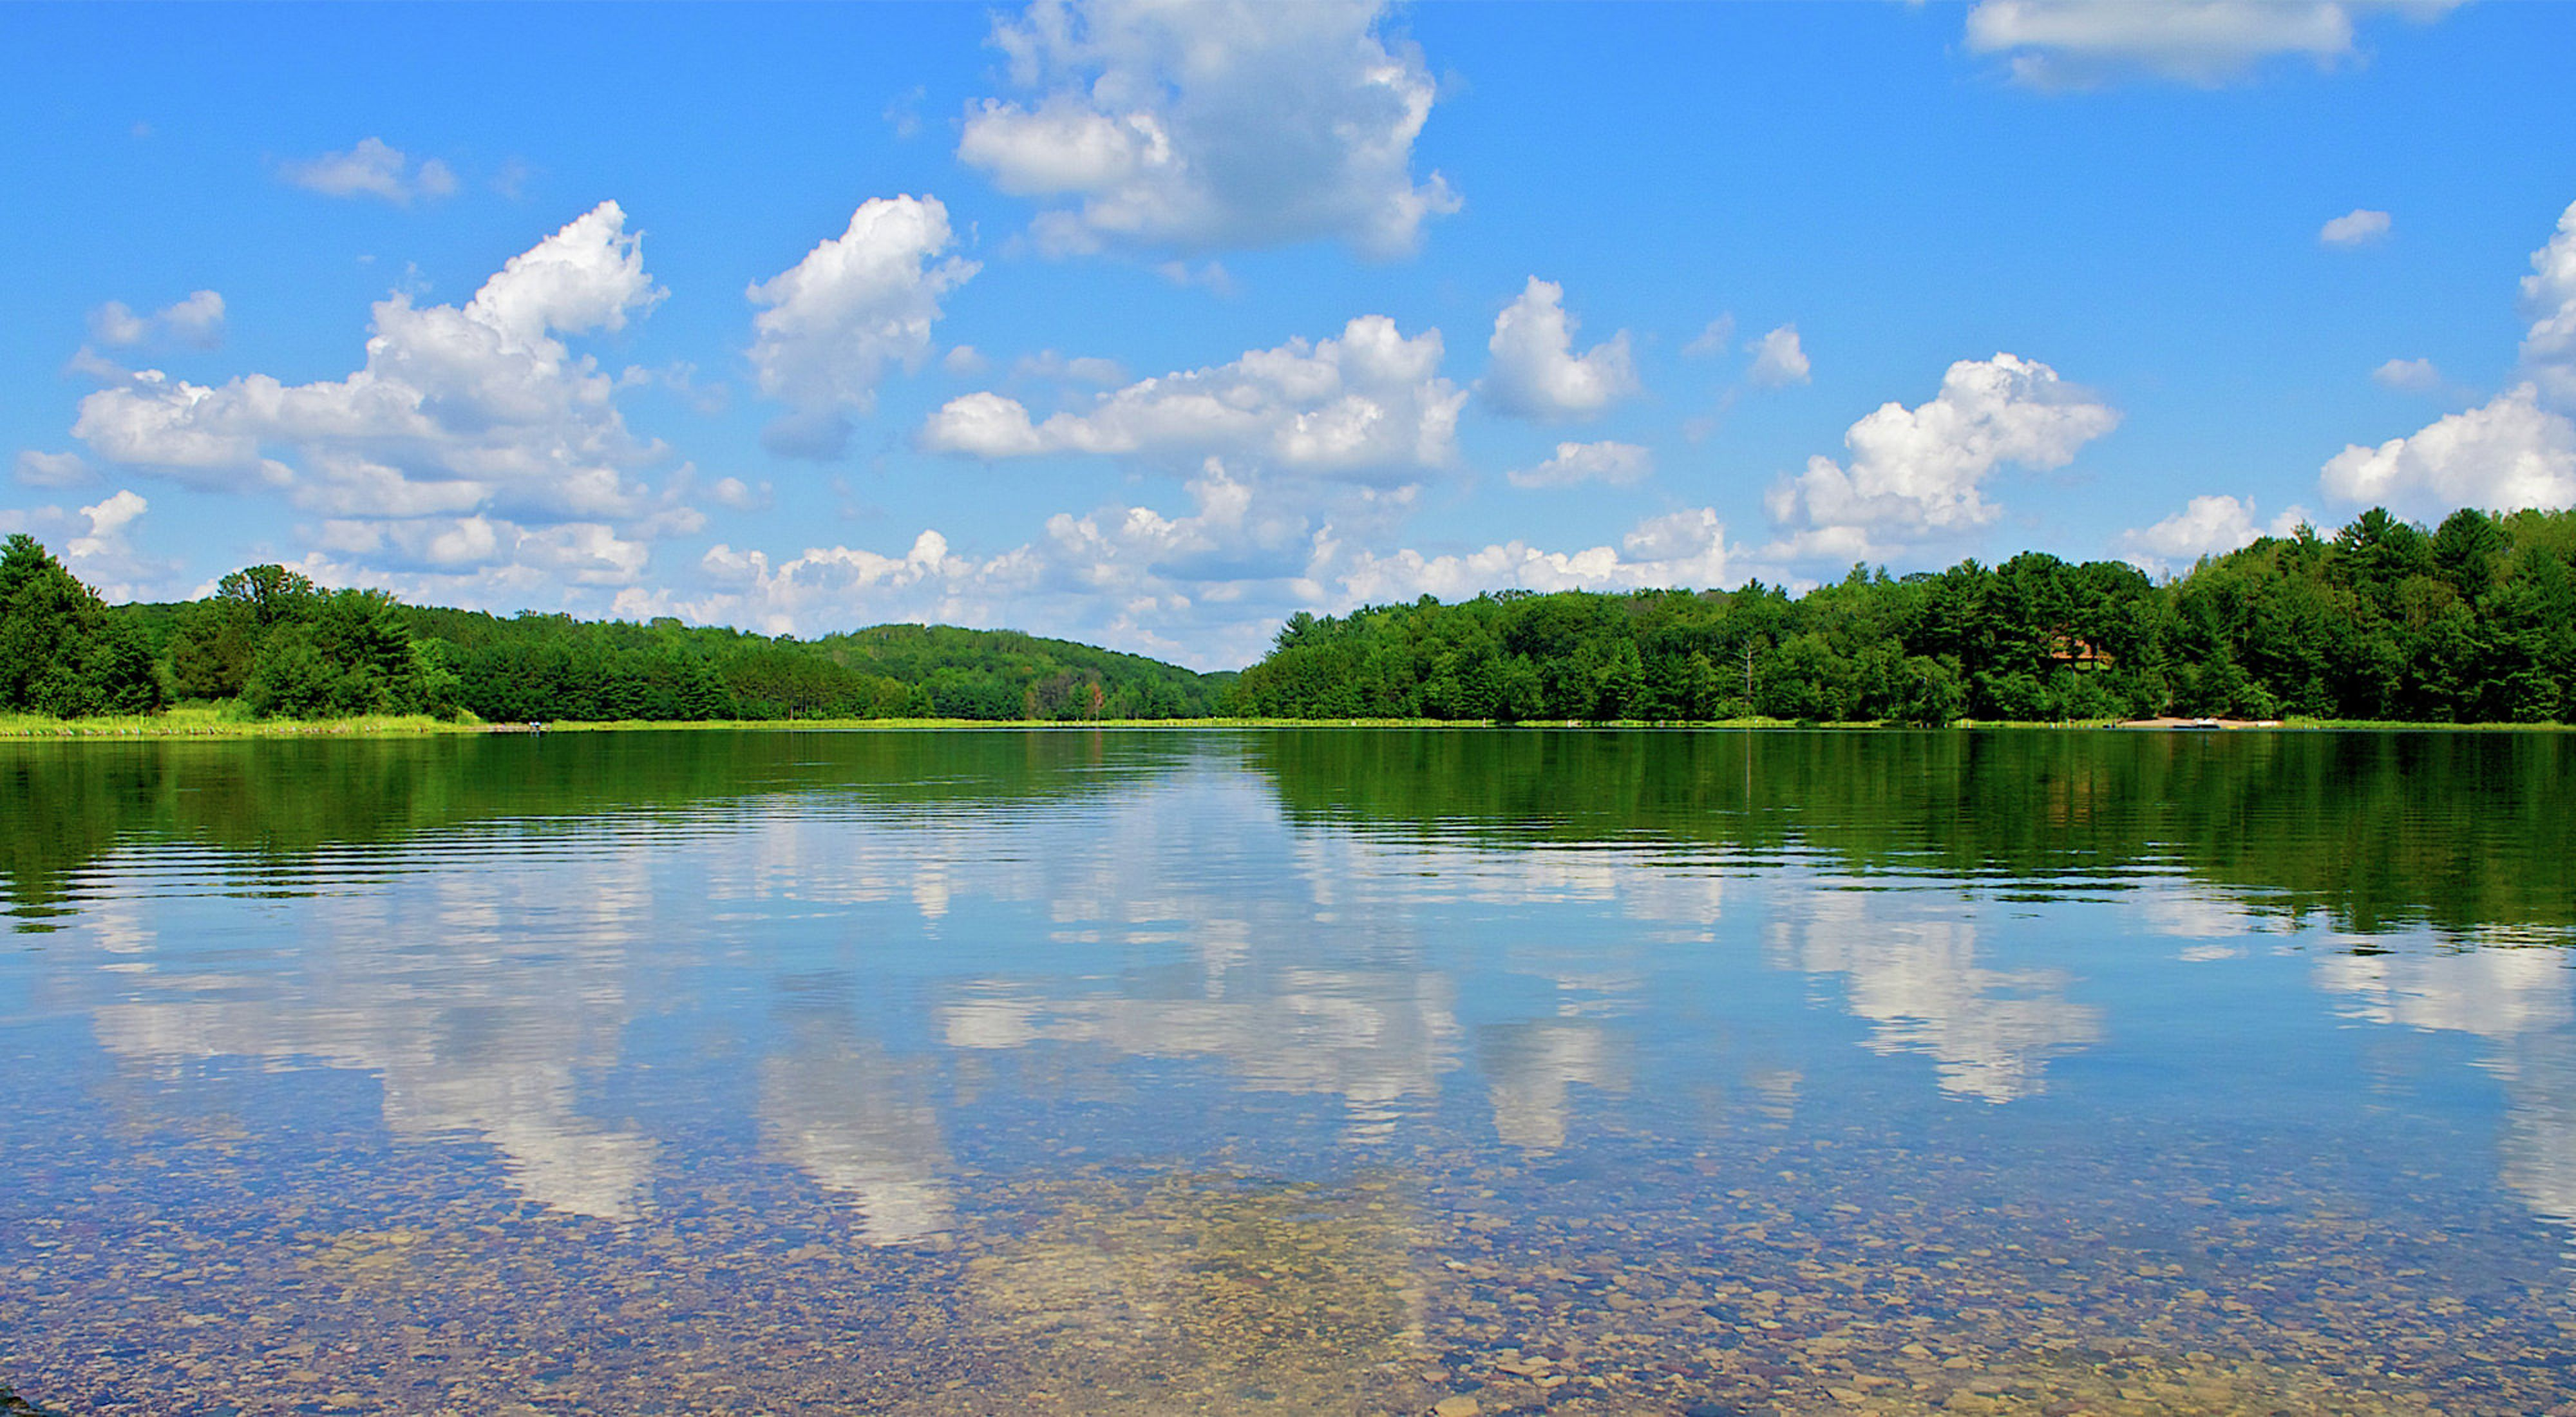 Clouds in a blue sky reflect in a forest lined lake.